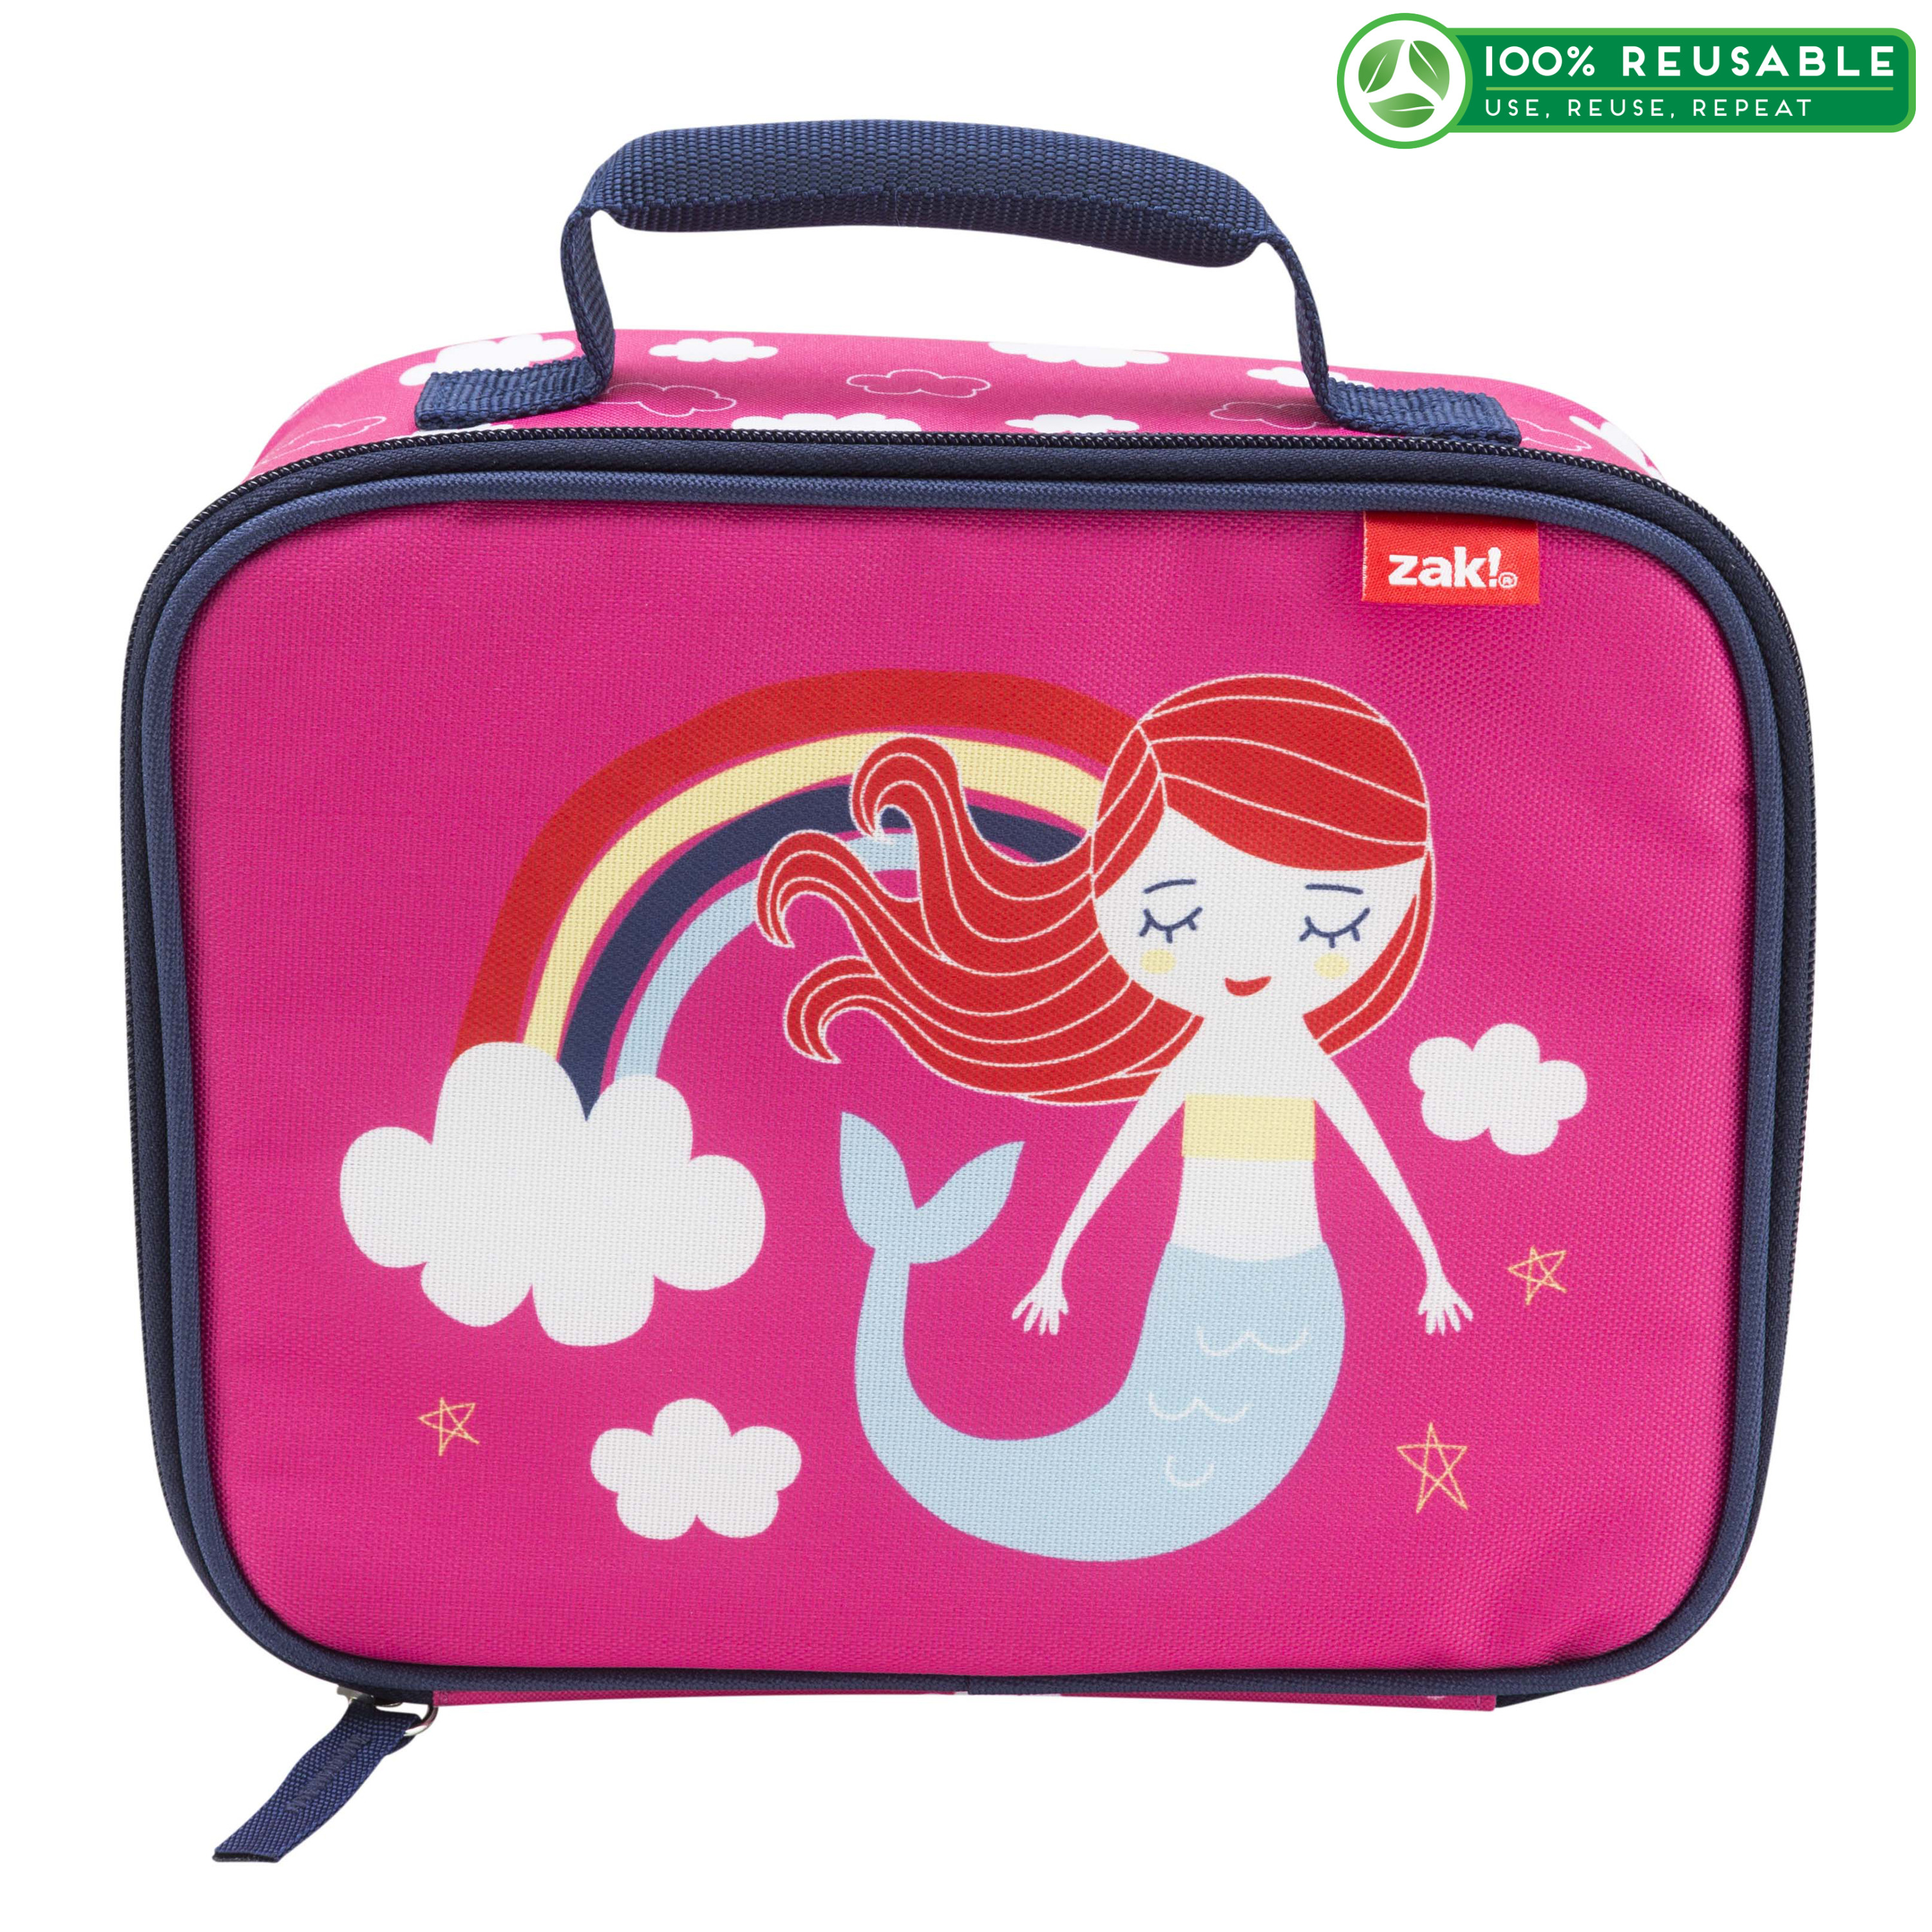 Happy Things Insulated Reusable Lunch Bag, Mermaids slideshow image 1